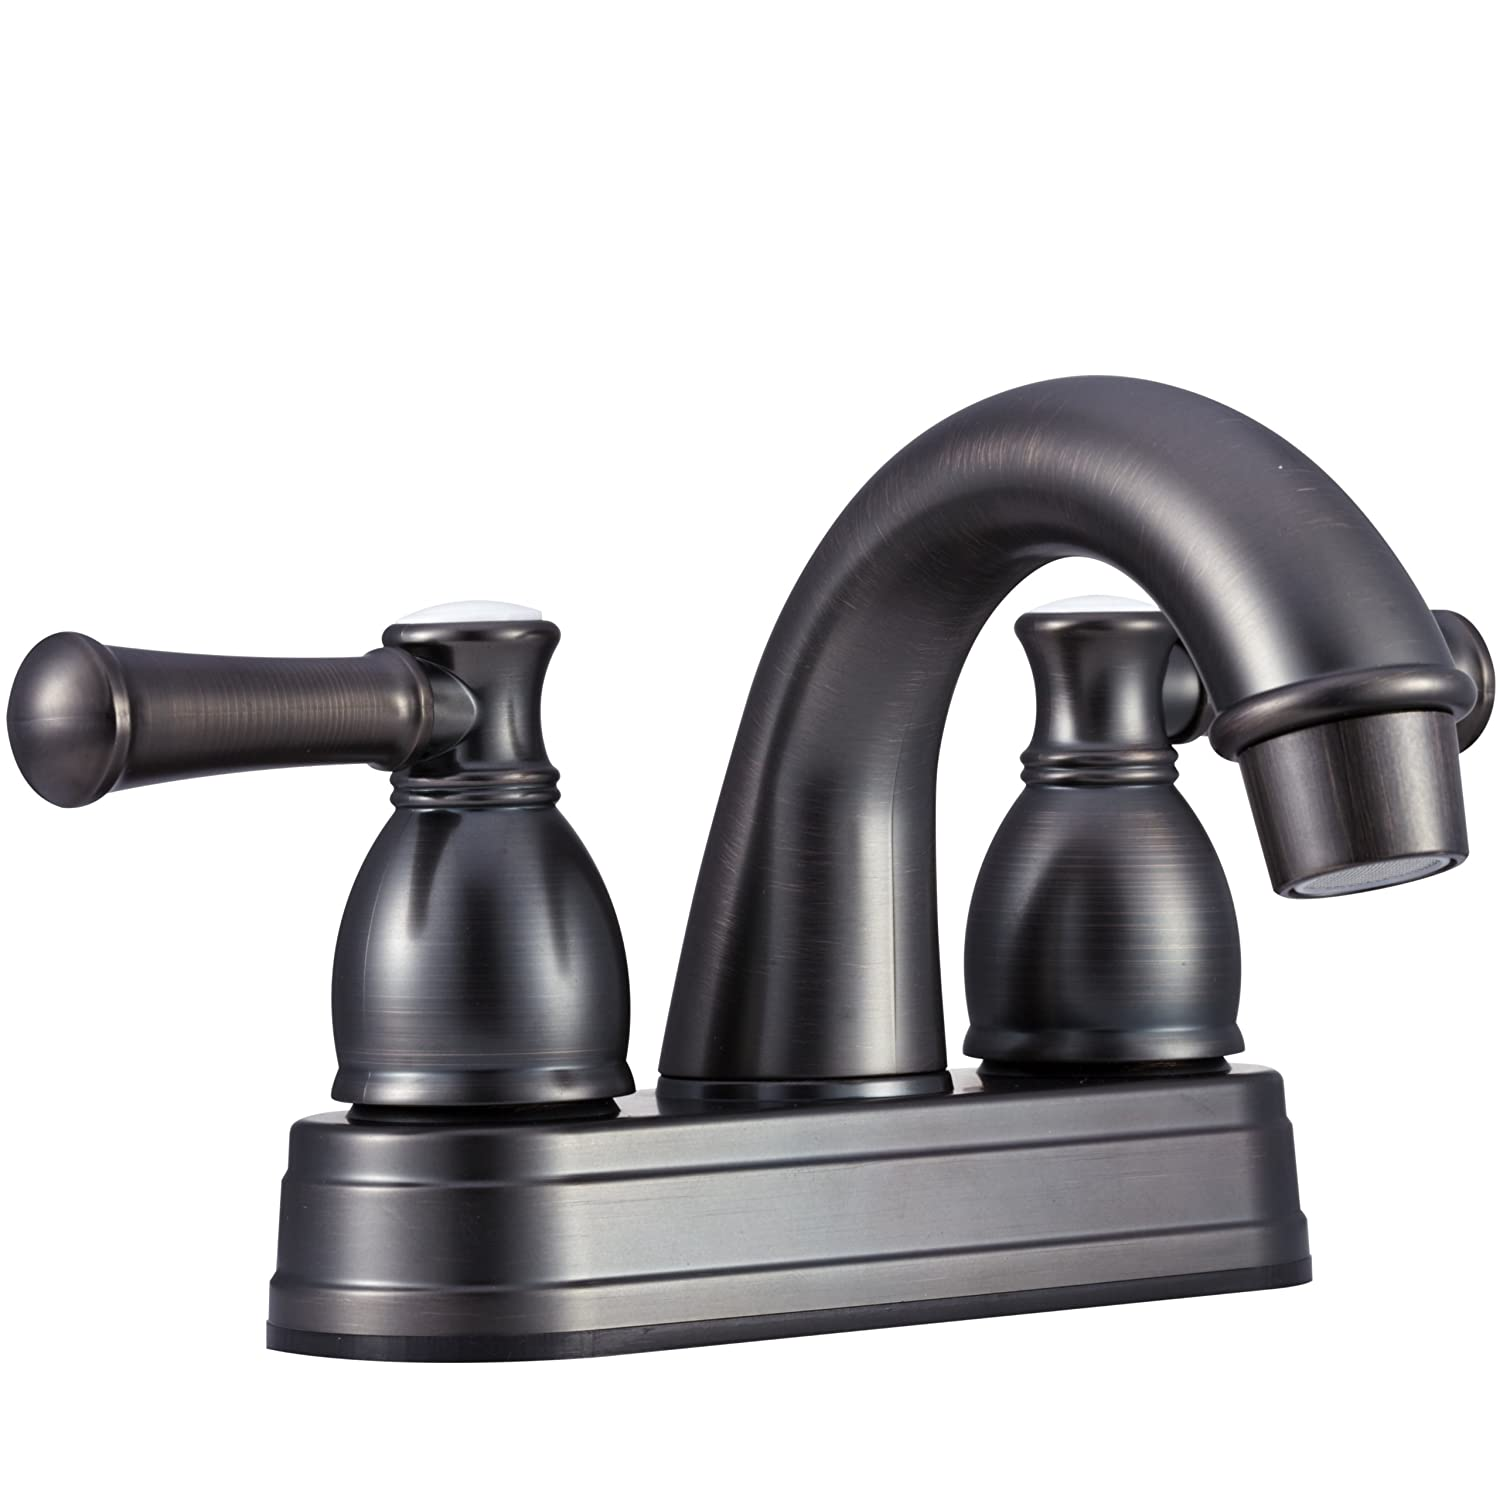 Dura Faucet (DF-PL620L-SN) Designer Two Handle Arc Spout RV Lavatory Faucet (Brushed Satin Nickel) DFPL620LSN